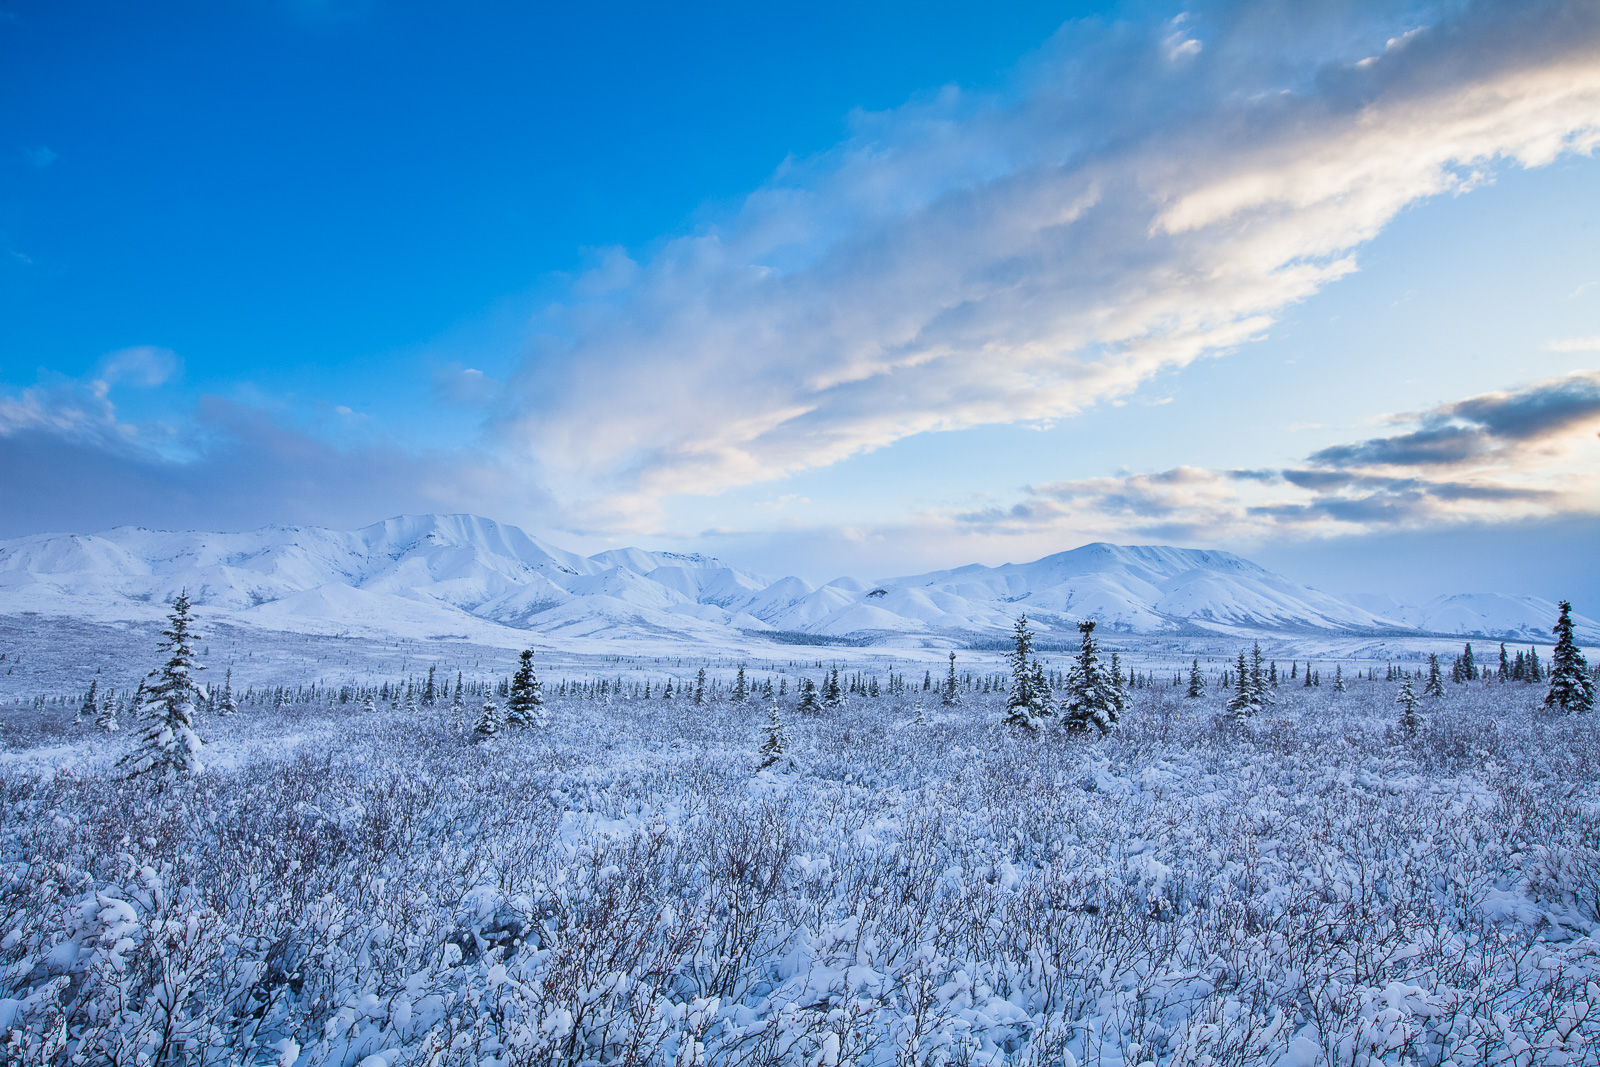 Denali Blues,Fall,Landscape,Snow,Denali National Park, Alaska,Tundra,Snow, photo